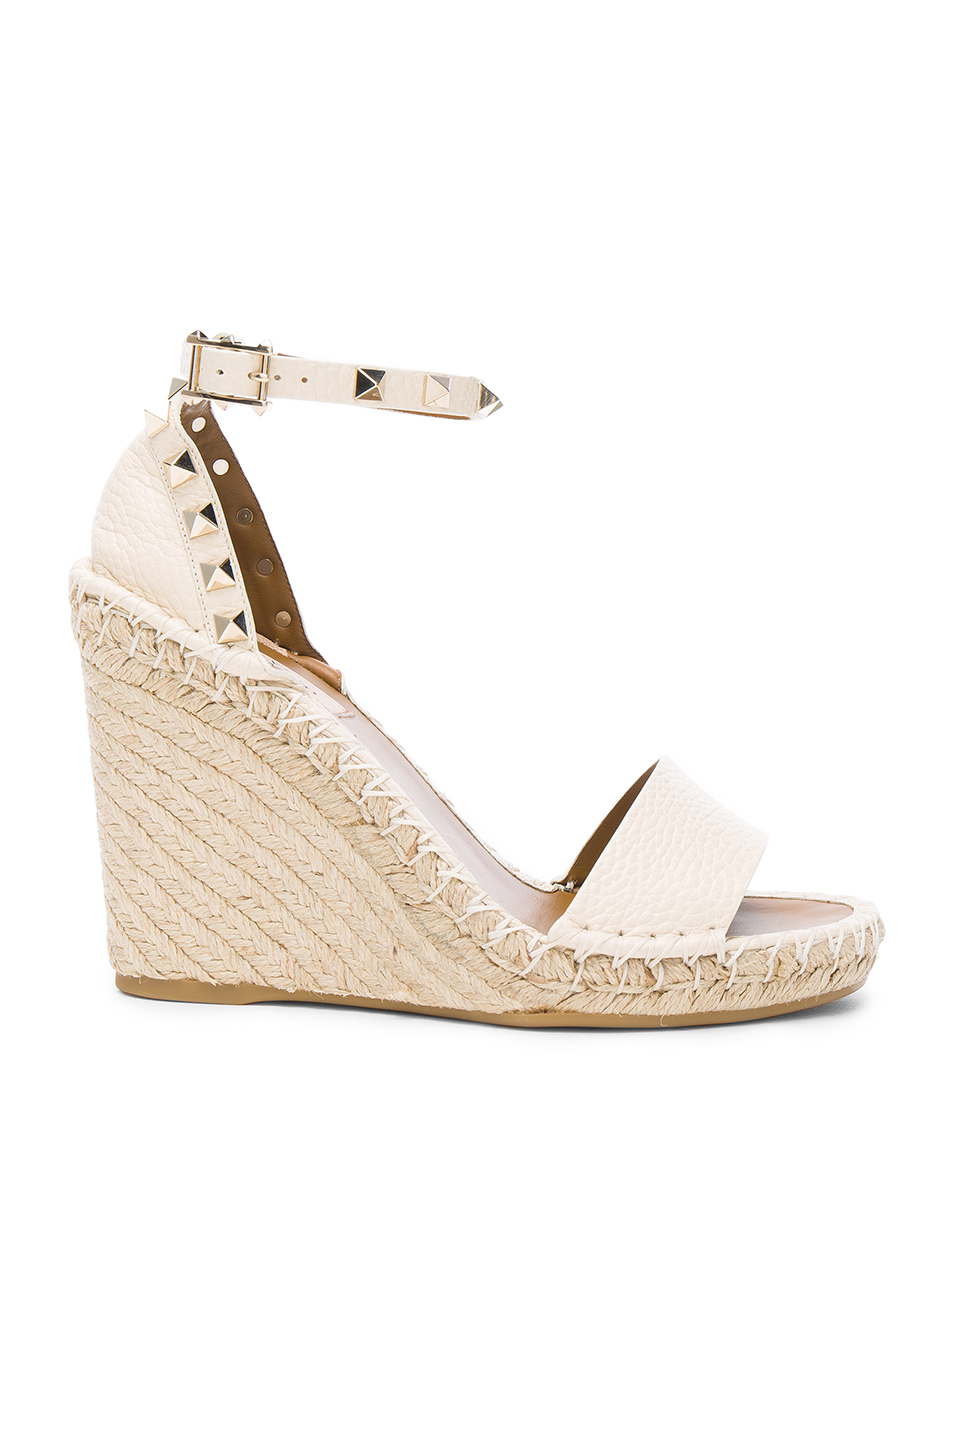 Valentino Rockstud Double Espadrille Leather Wedges In